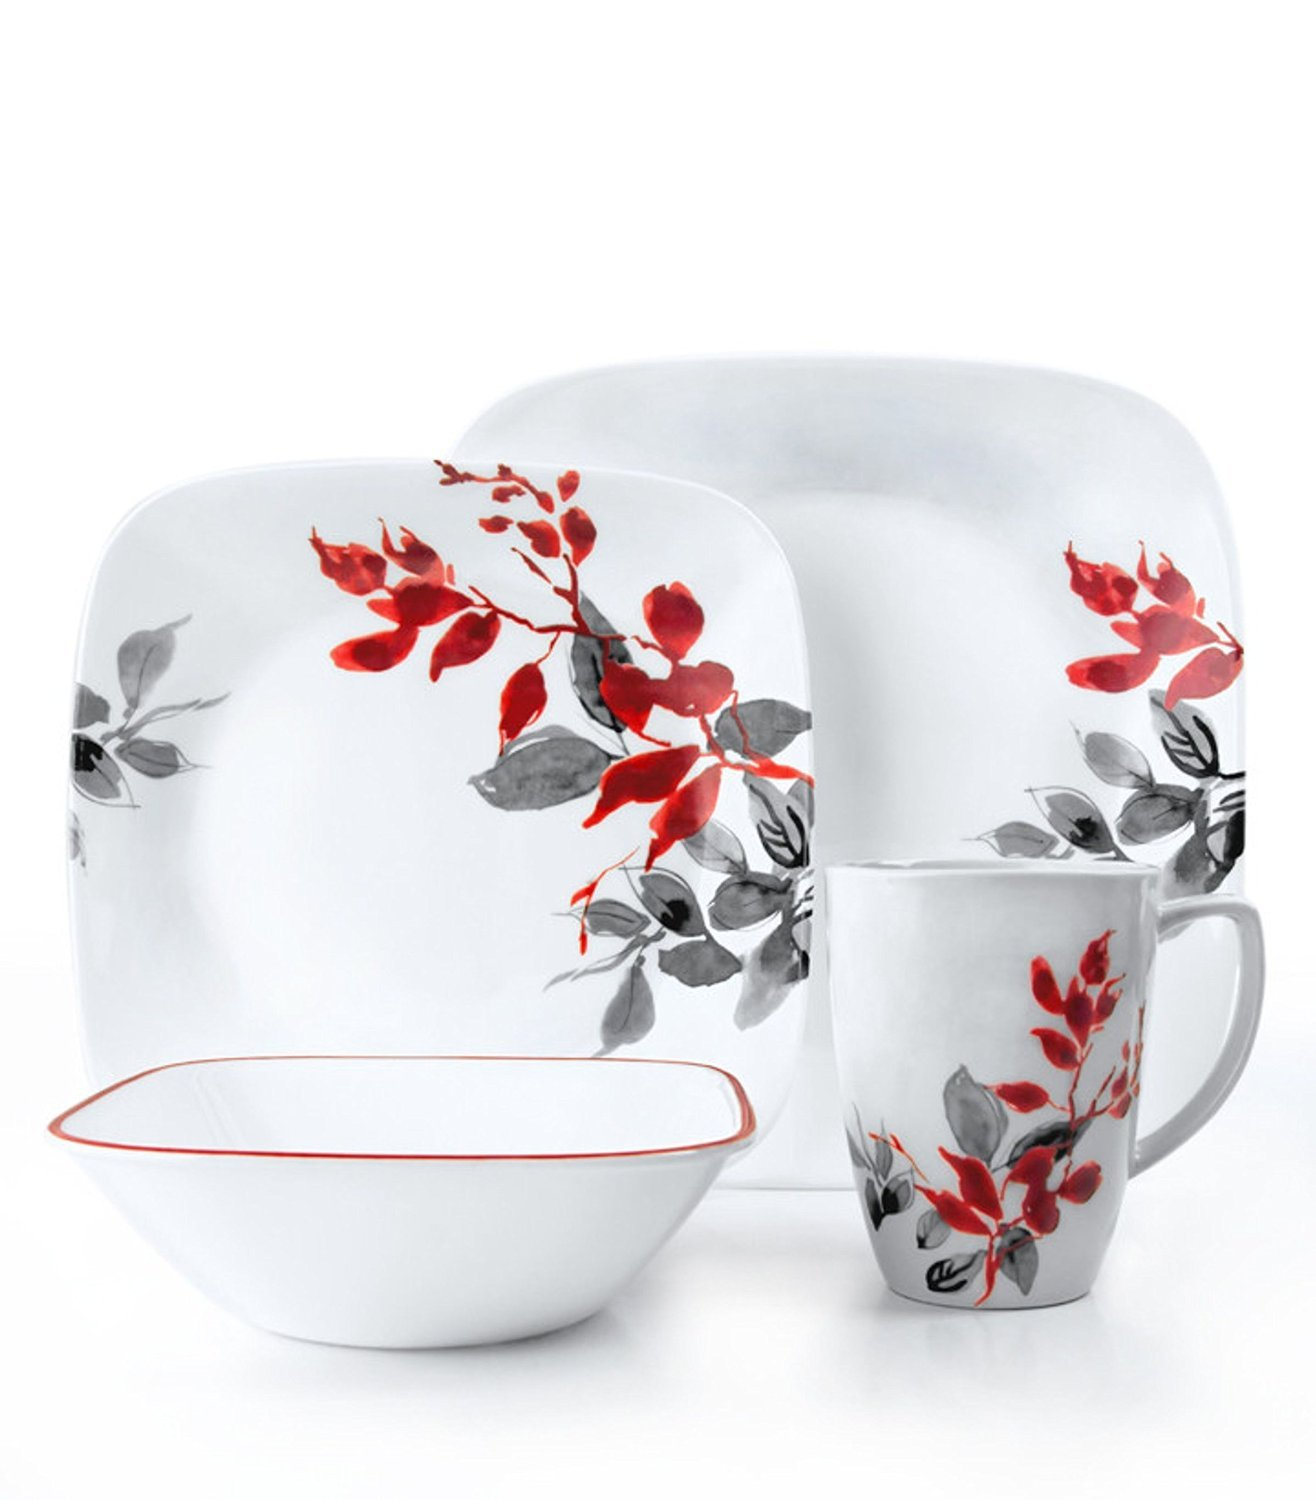 Corelle Square 32 Piece Dinnerware Set Kyoto Leaves  sc 1 st  Castrophotos : corelle 32 piece dinnerware set - pezcame.com